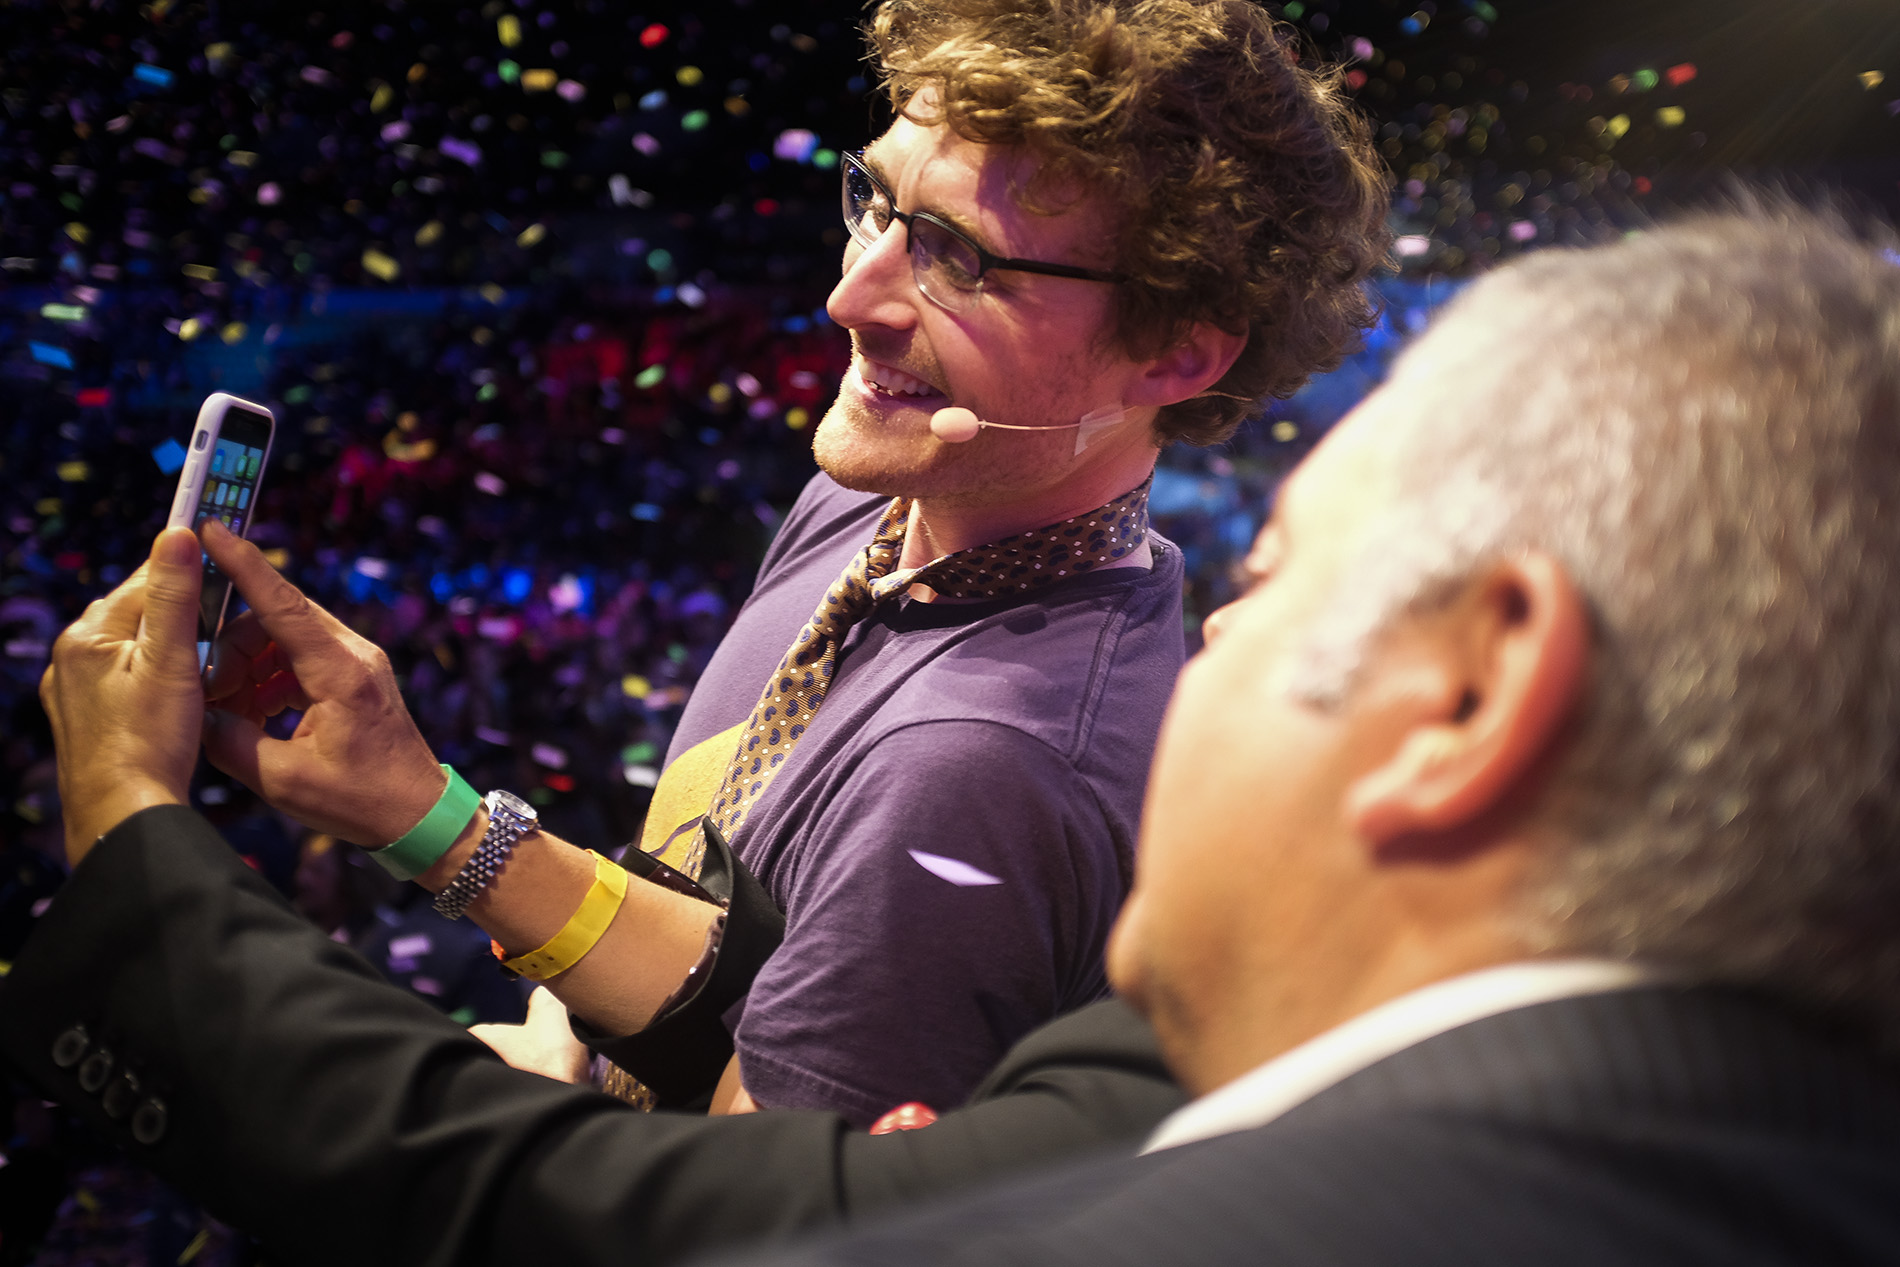 Paddy Cosgrave taking a selfie on the Center Stage during the opening night